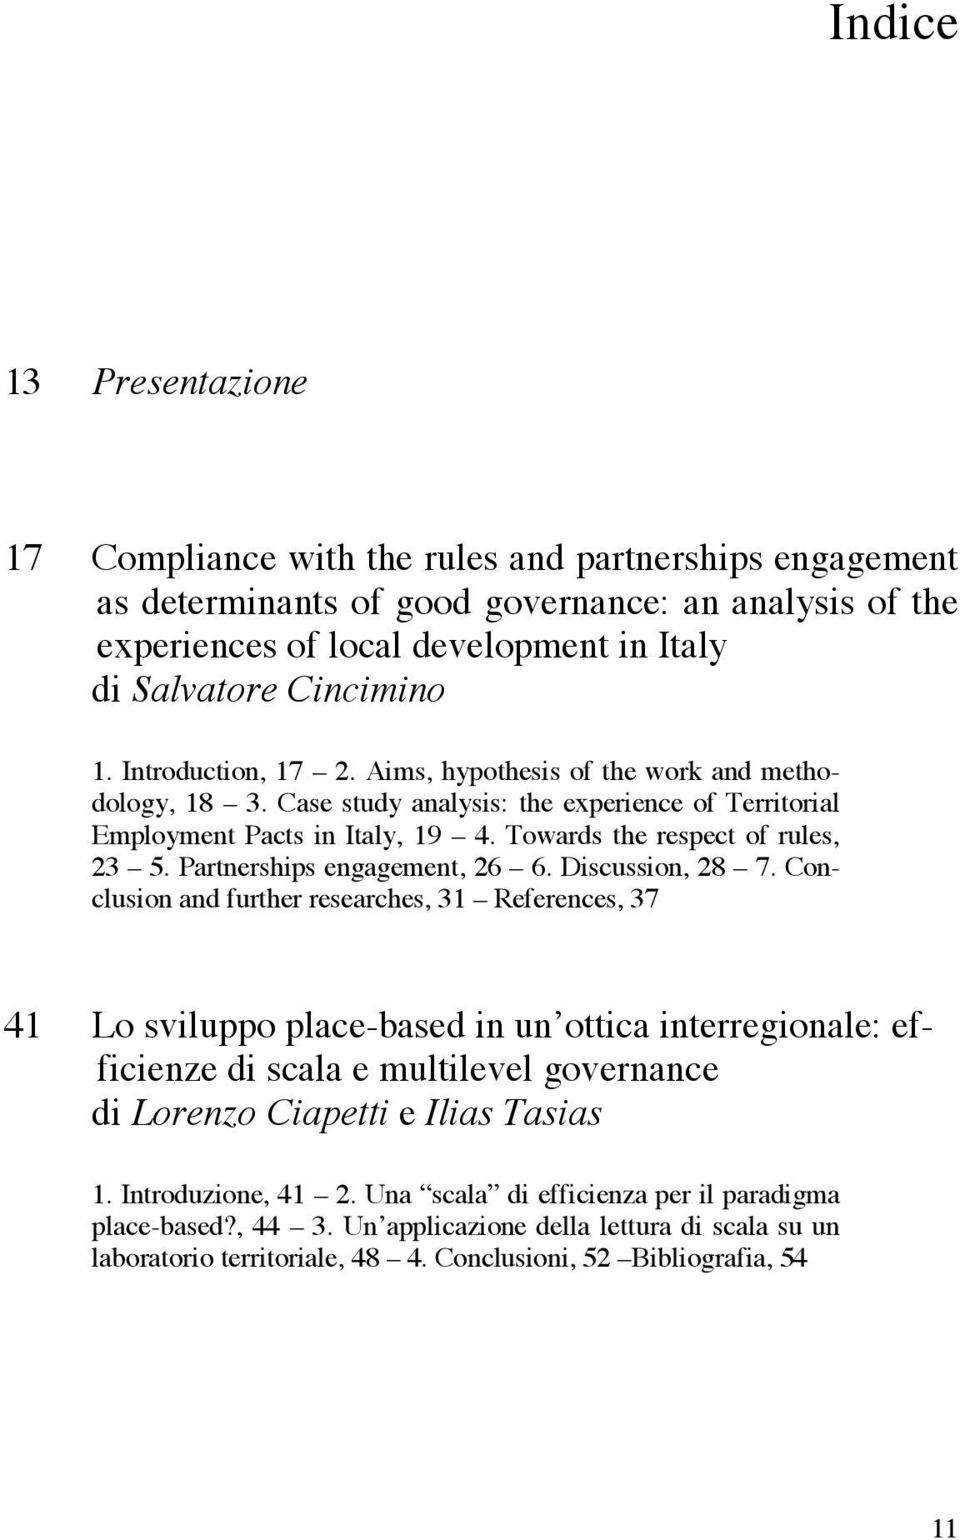 Towards the respect of rules, 23 5. Partnerships engagement, 26 6. Discussion, 28 7.